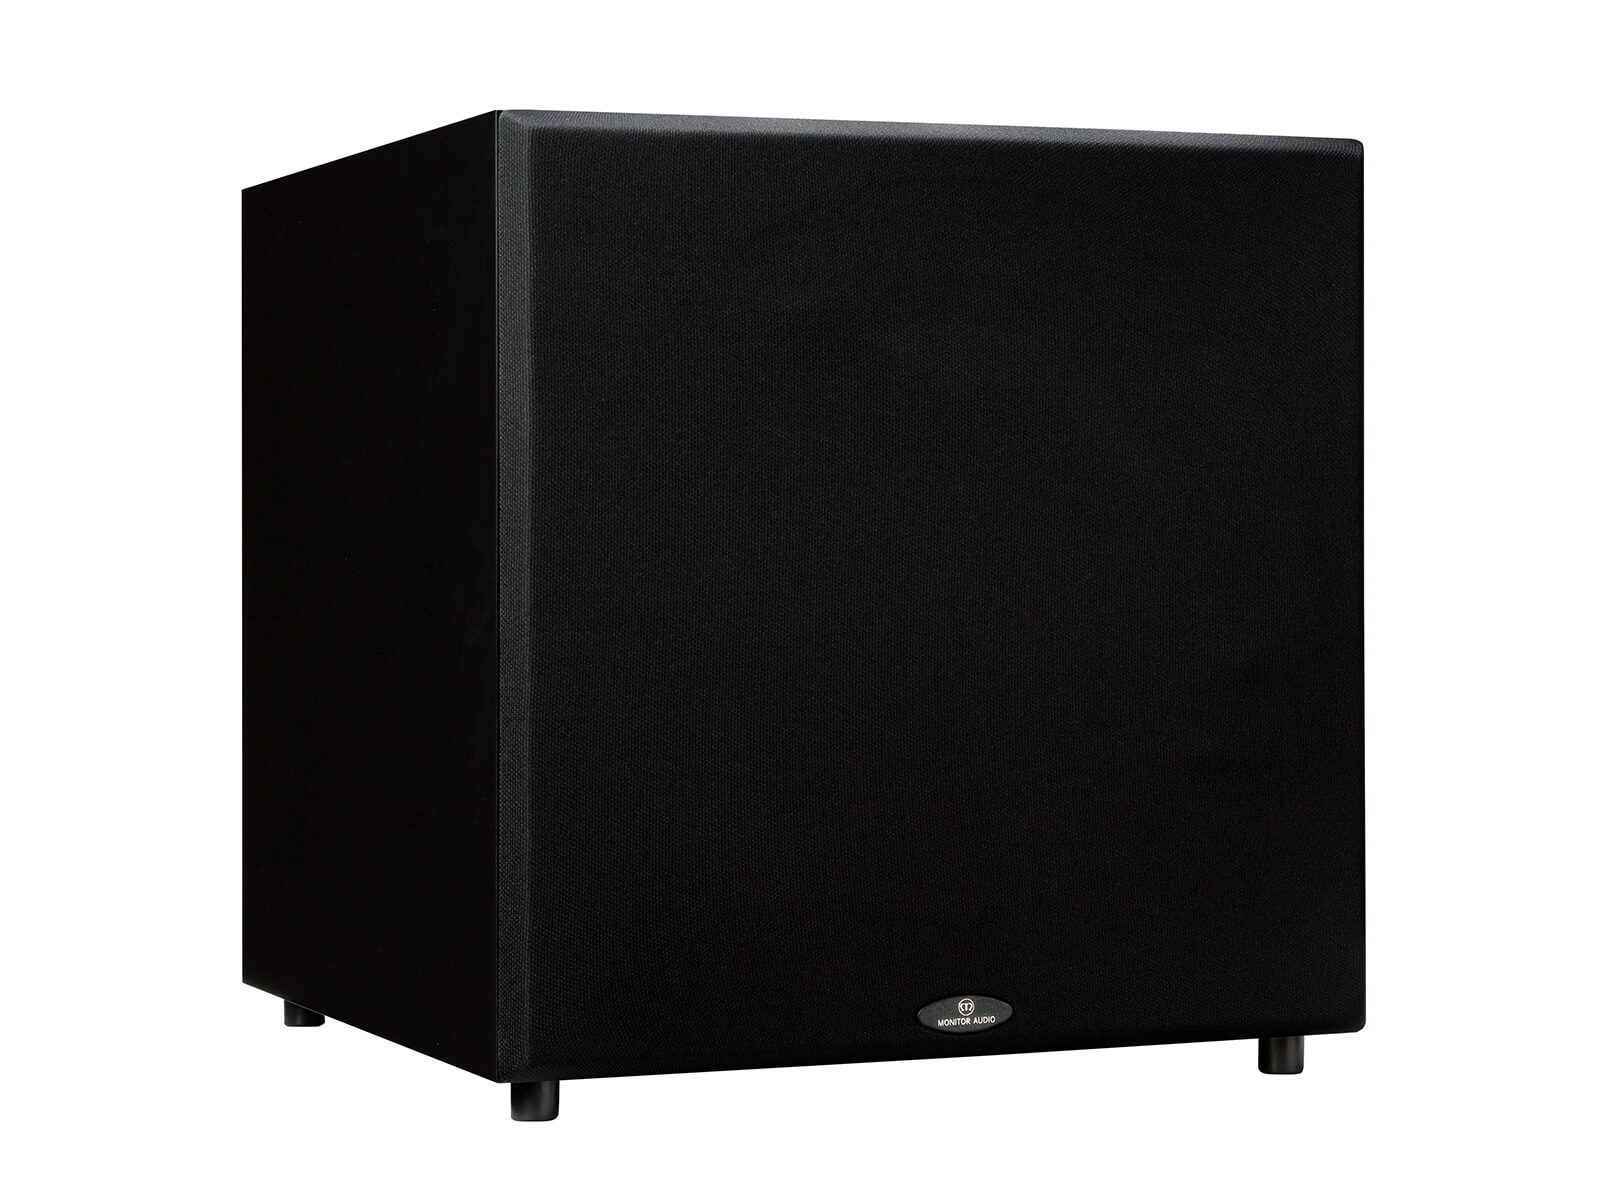 Monitor MRW-10 subwoofer, featuring a grill and a black finish.